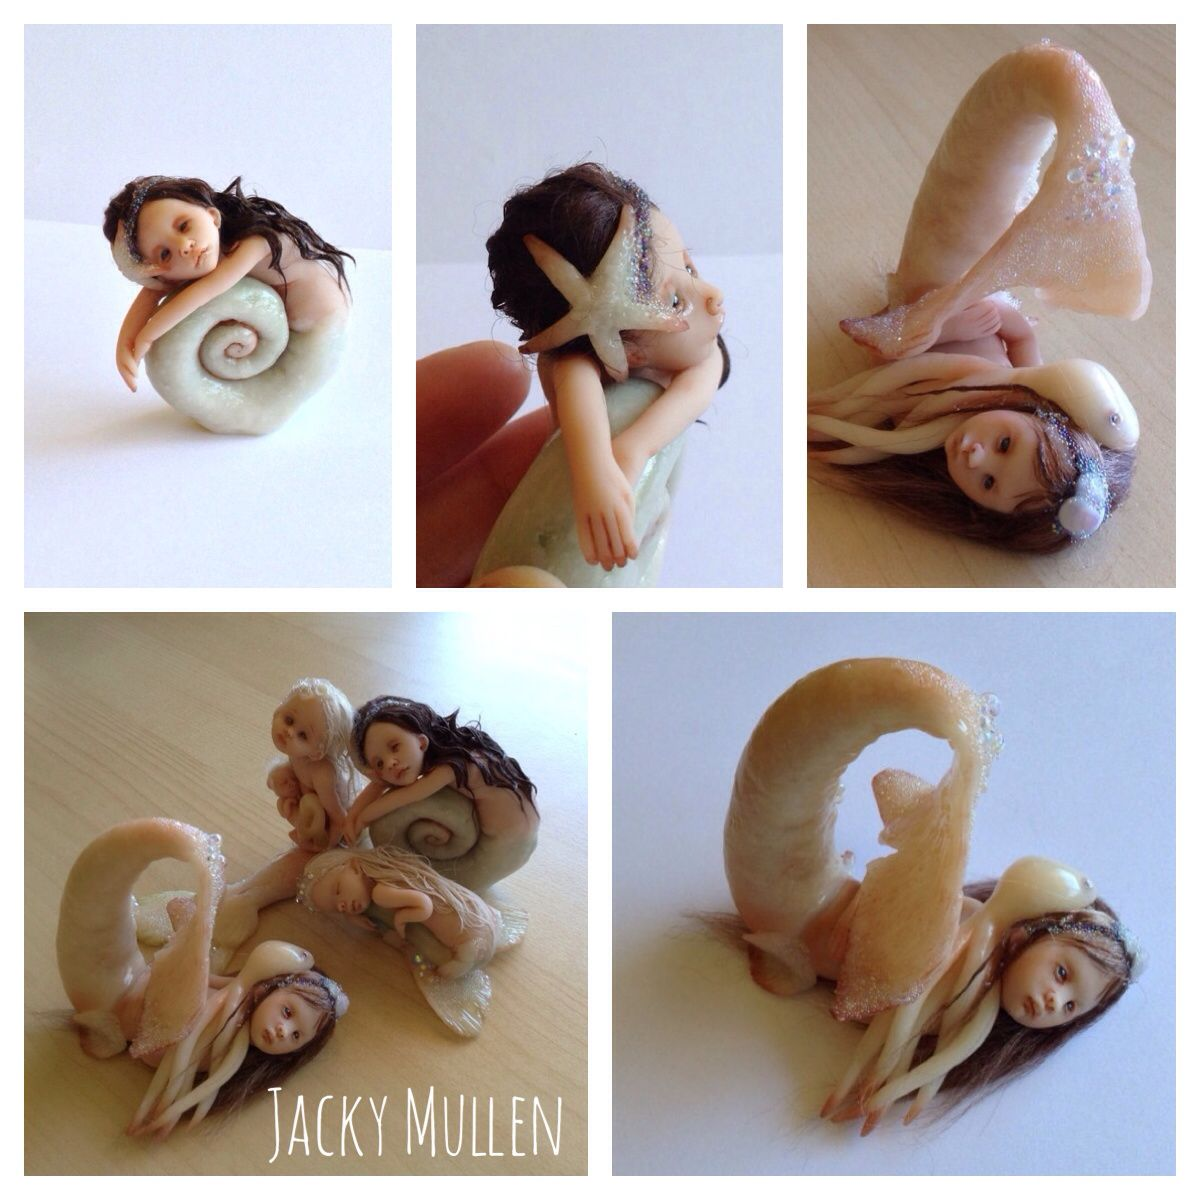 OOAK Handmade Clay Mermaid and Snail Sculpts by Jacky Mullen